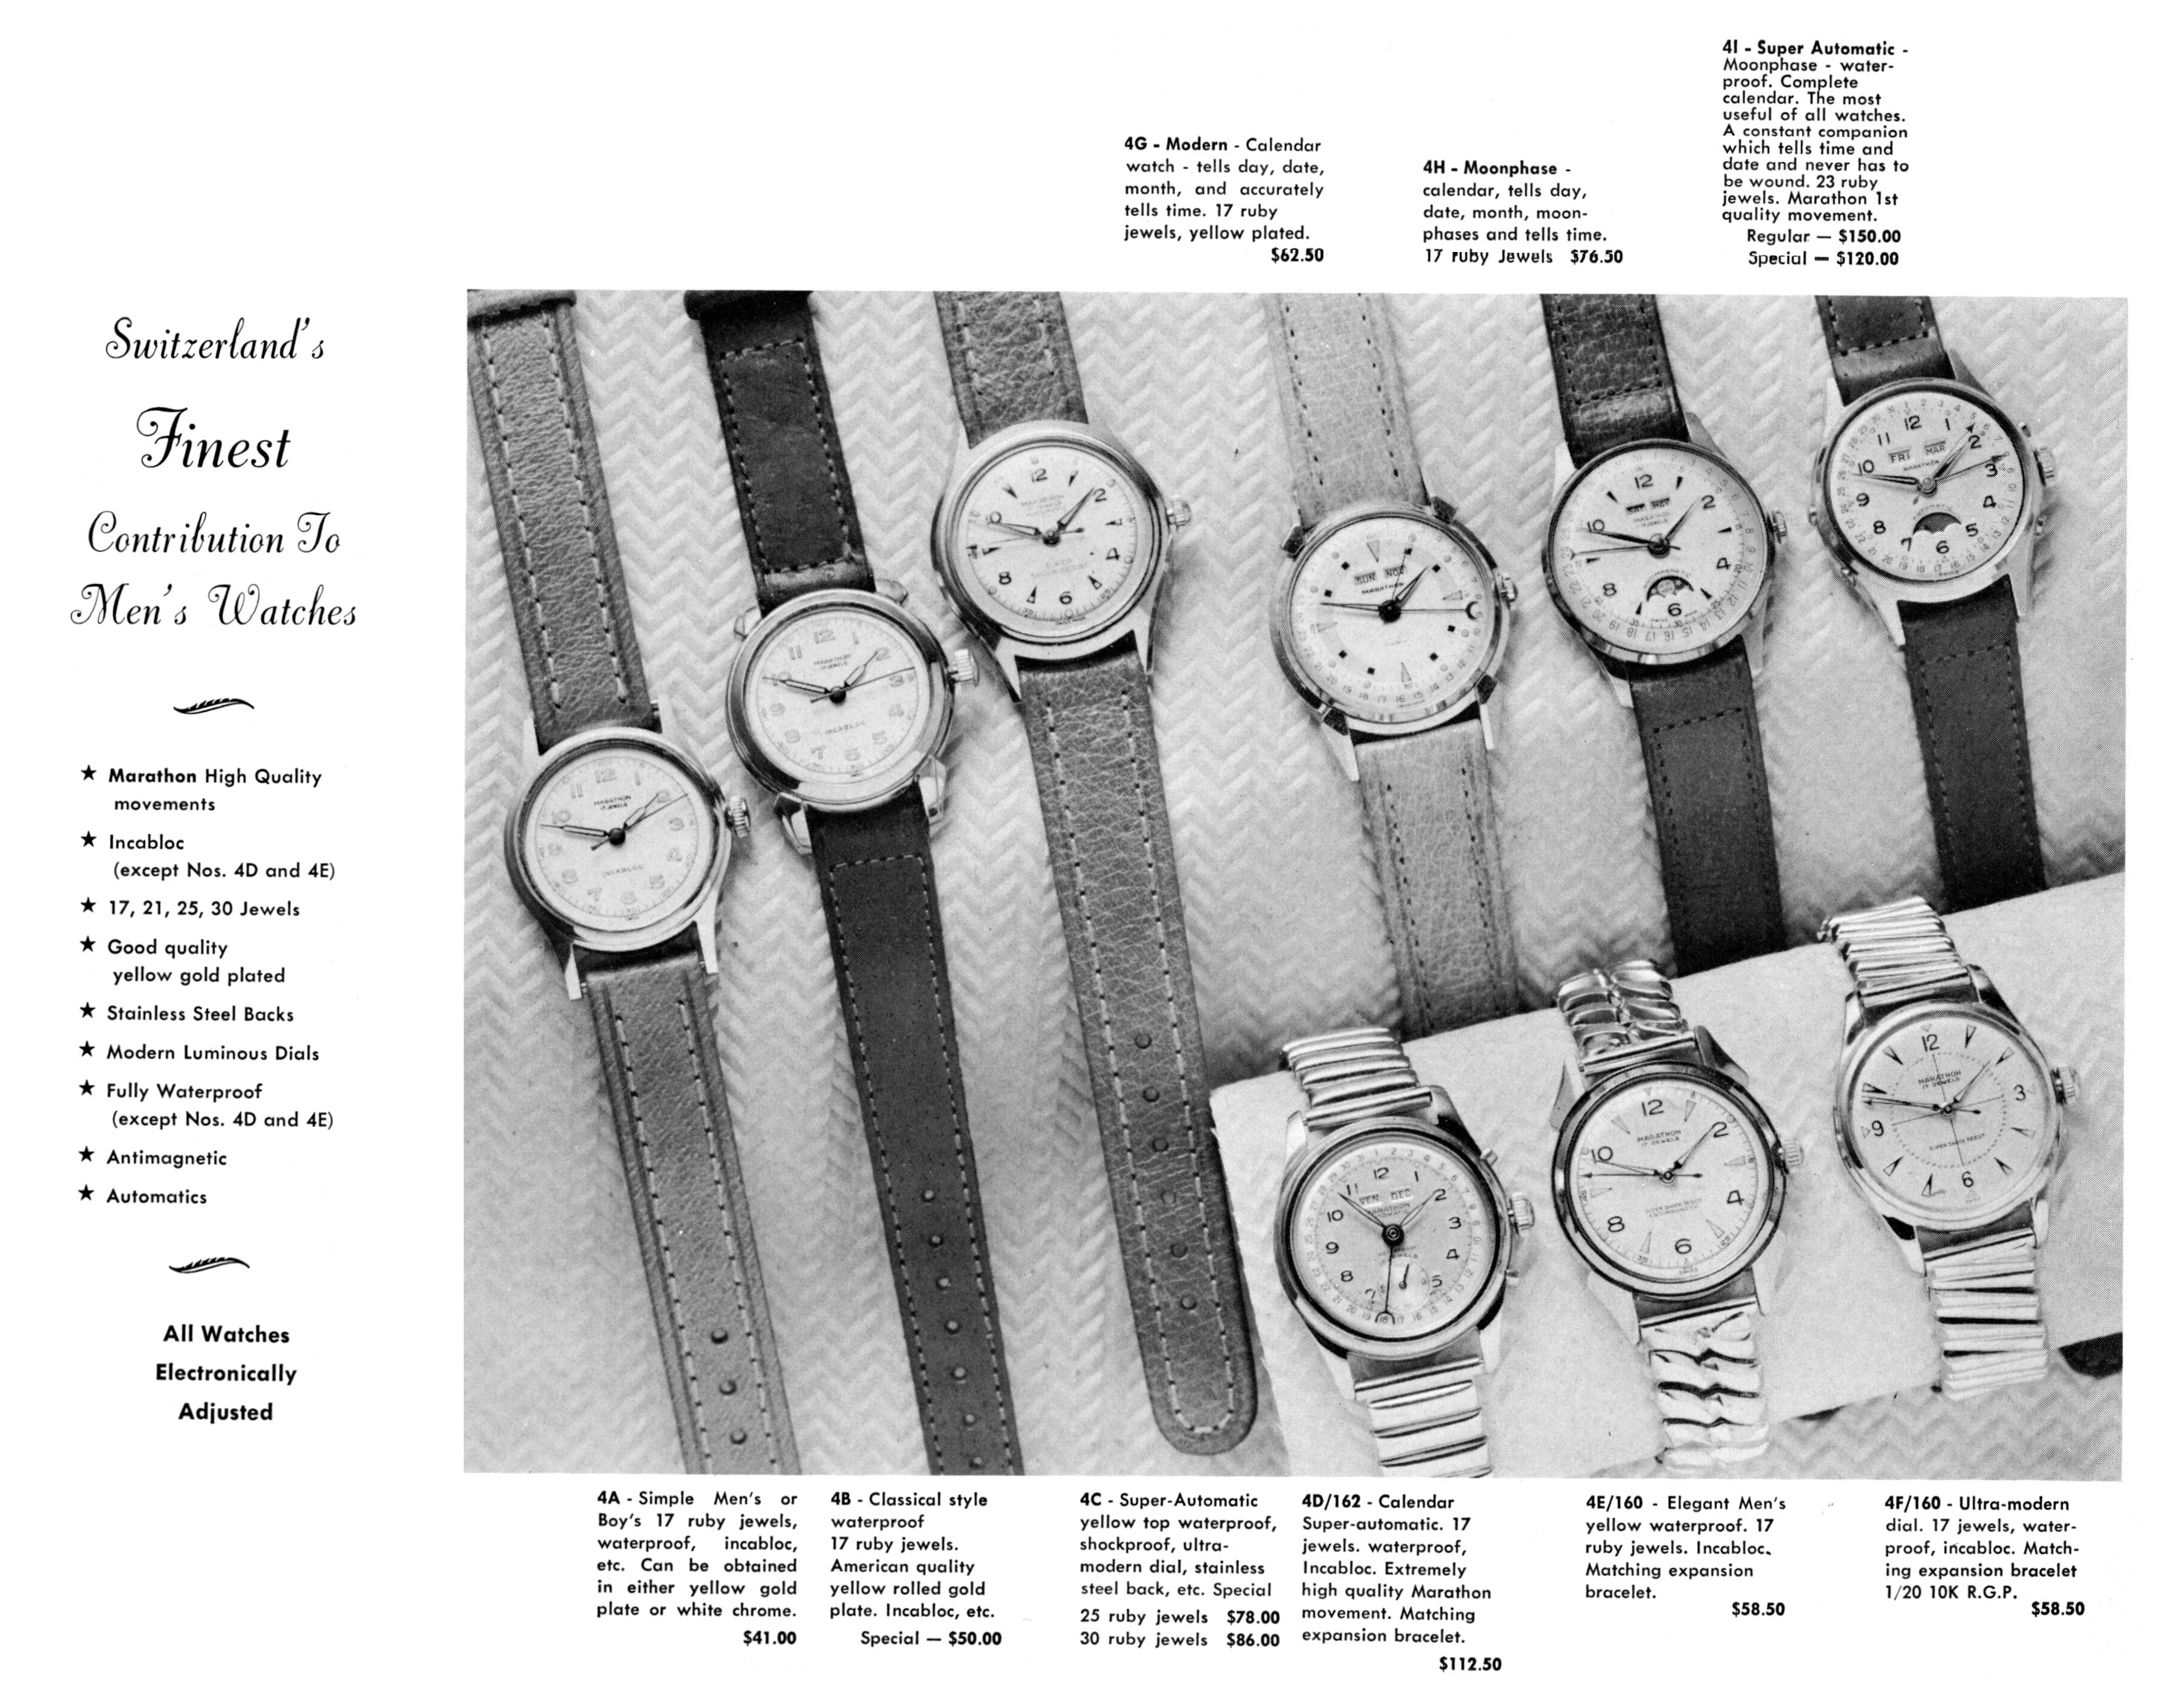 black and white ad: 'Switzerland's Finest Contribution to Men's Watches' next to images of nine watches